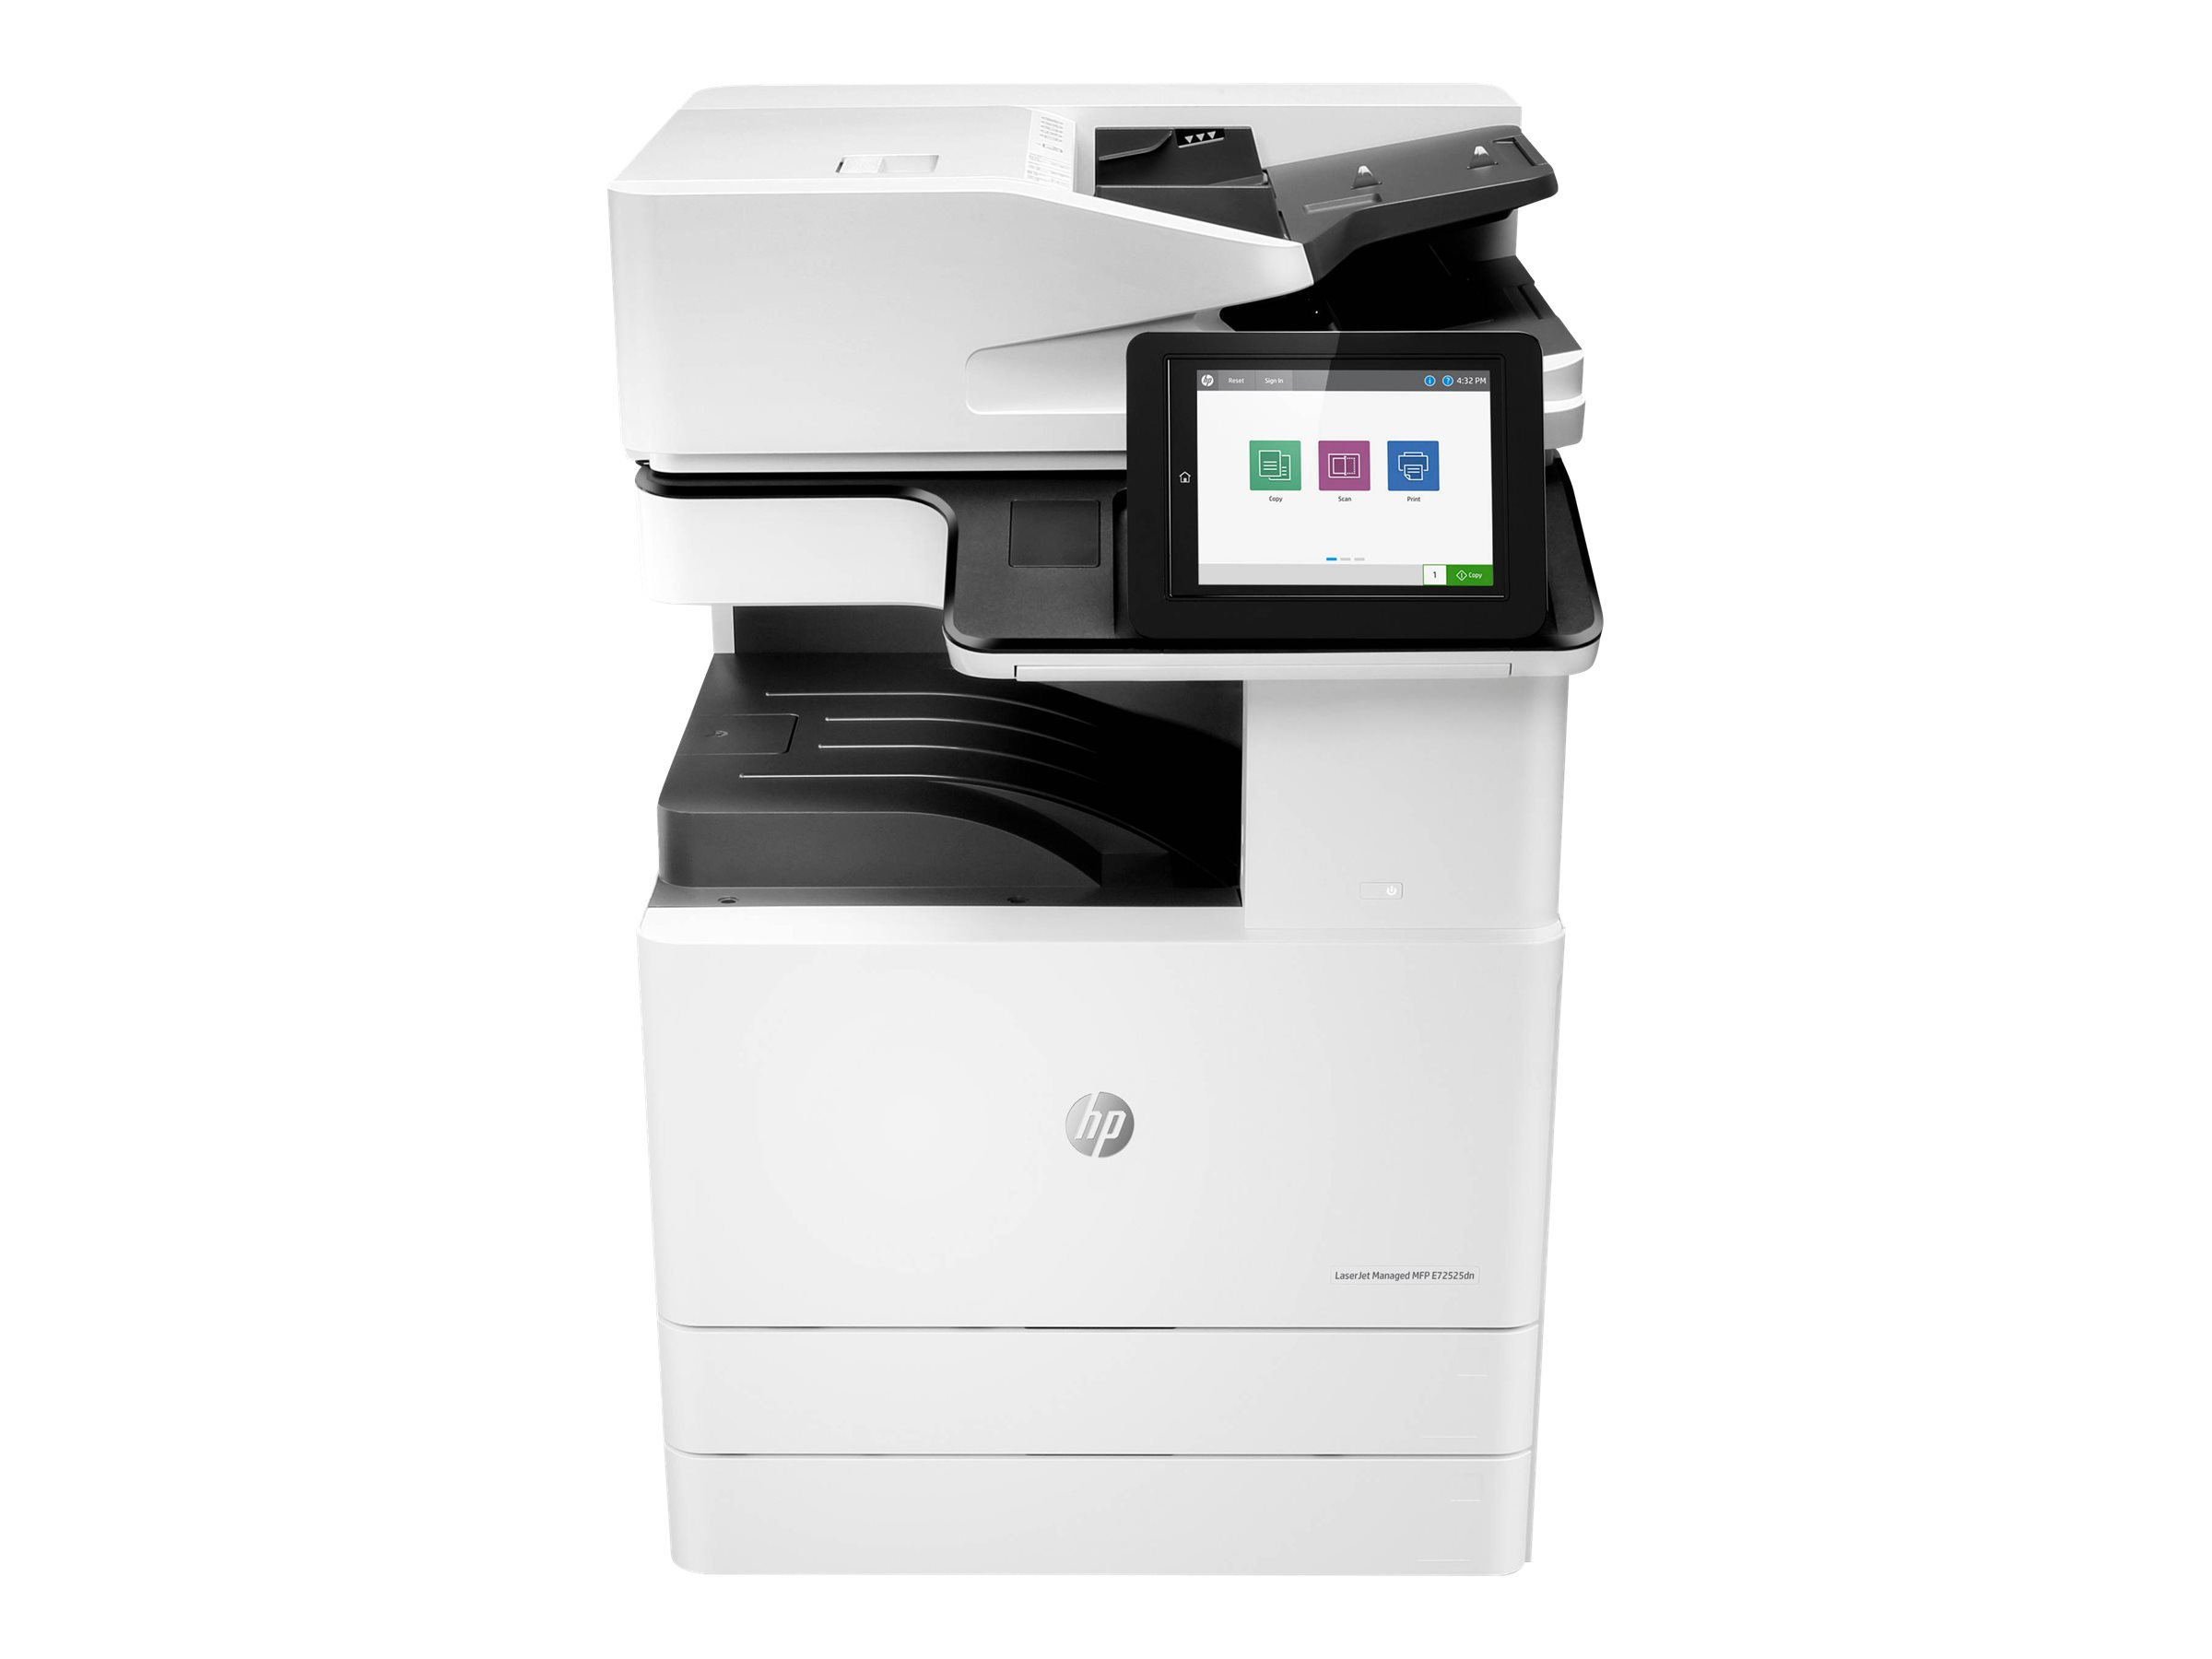 Copieur LaserJet Managed Flow MFP HP E72535z - vitesse 35ppm vue avant